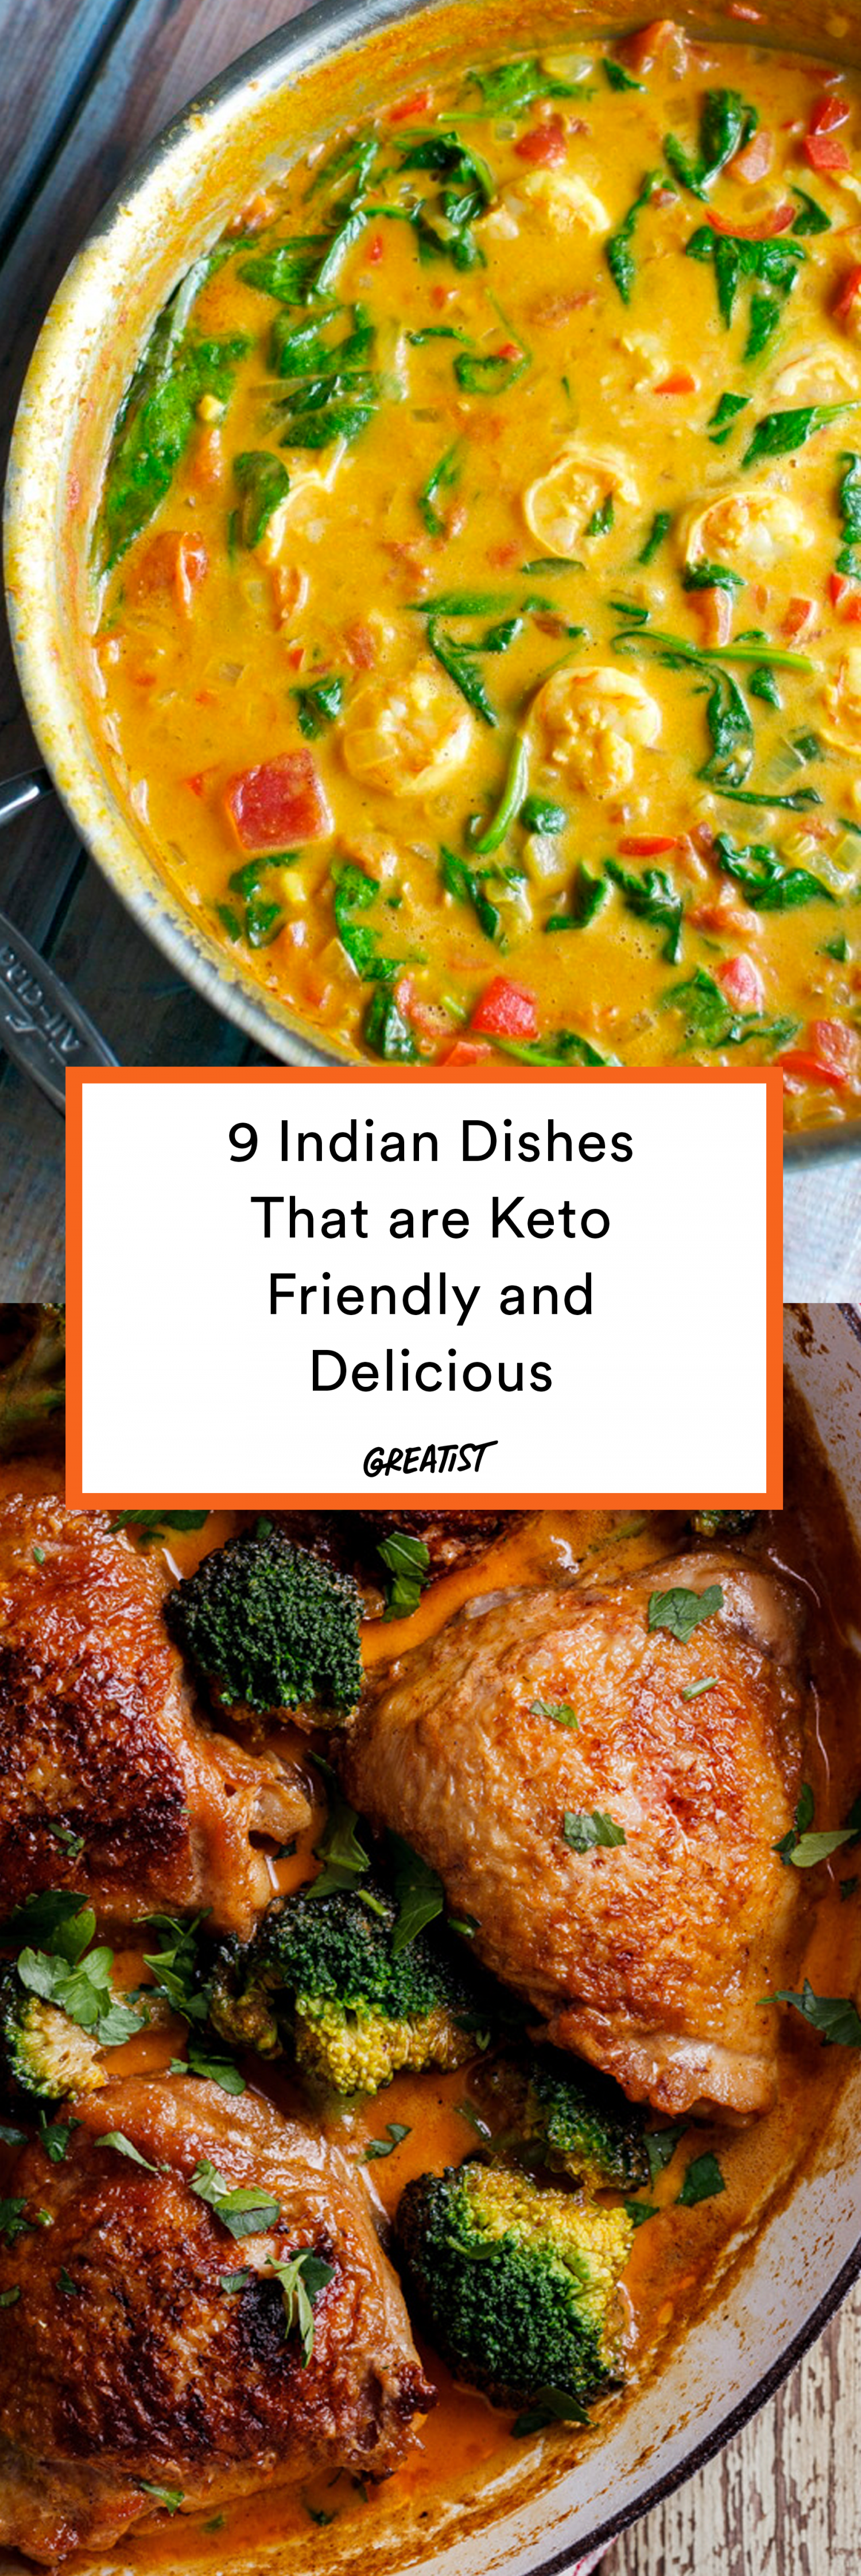 9 Indian Dishes That Are Almost Always KetoFriendly